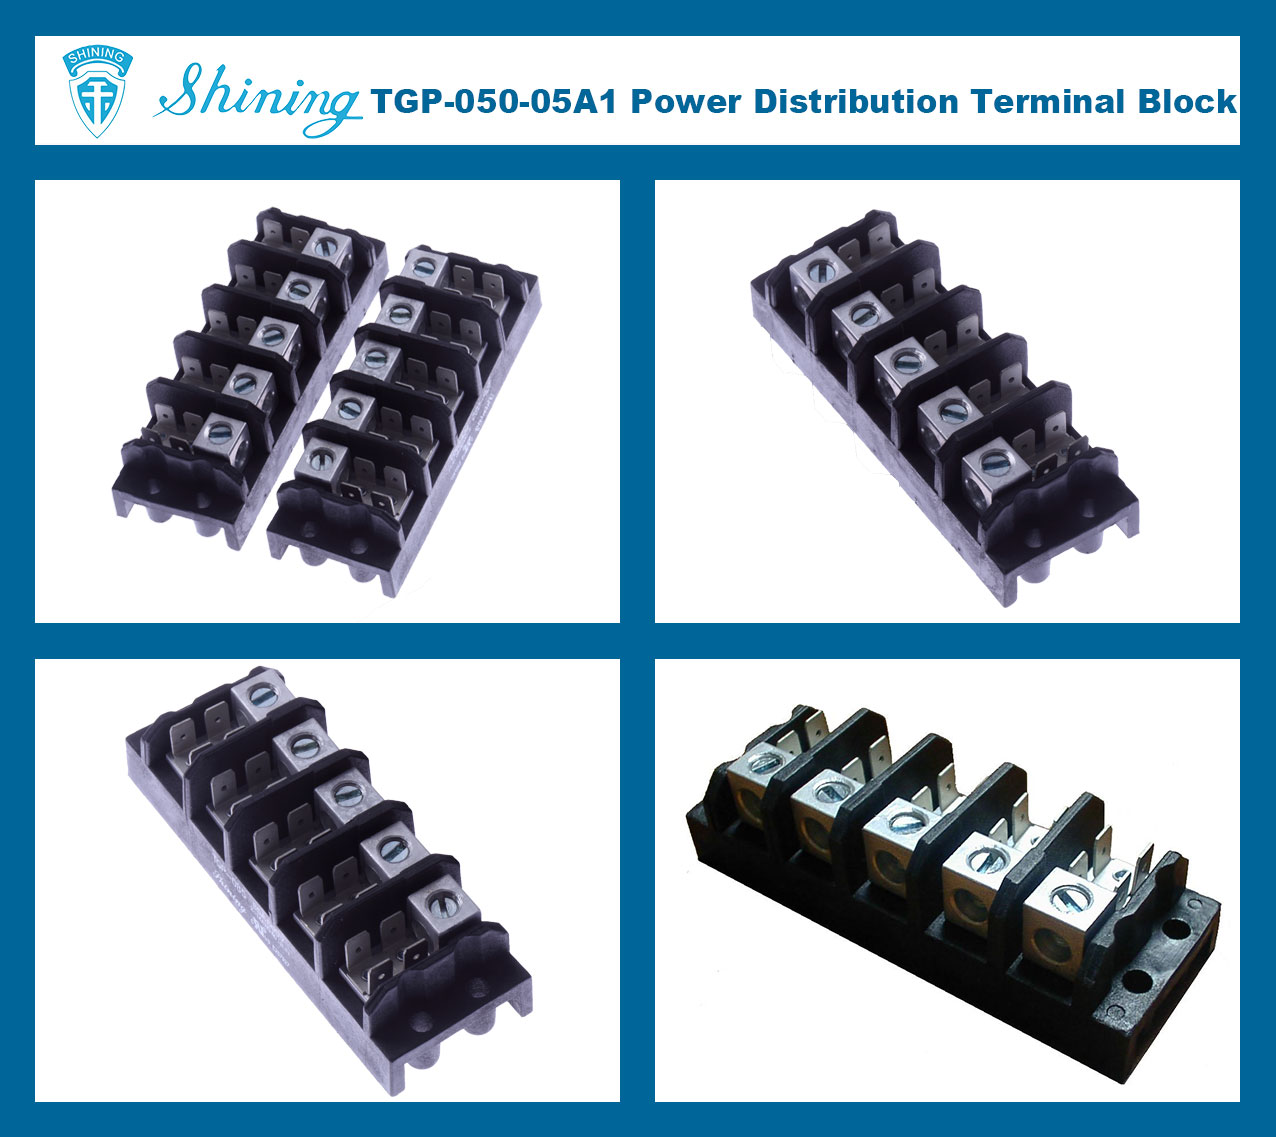 TGP-050-05A1 600V 50A 5 Pole Power Terminal Block